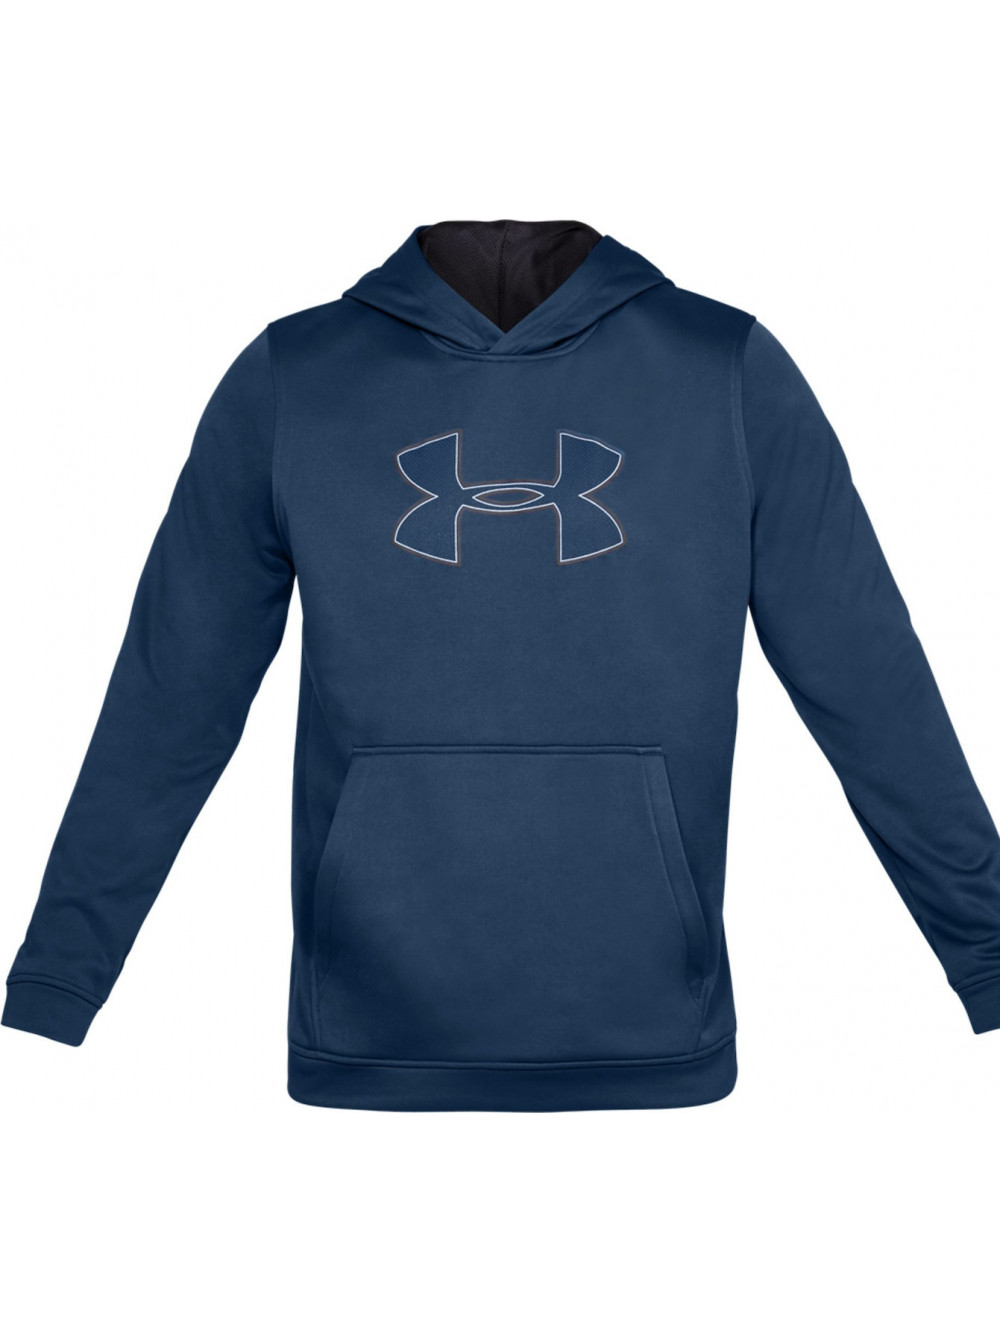 Pánska mikina Under Armour Performance Fleece Graphic Hoody modrá